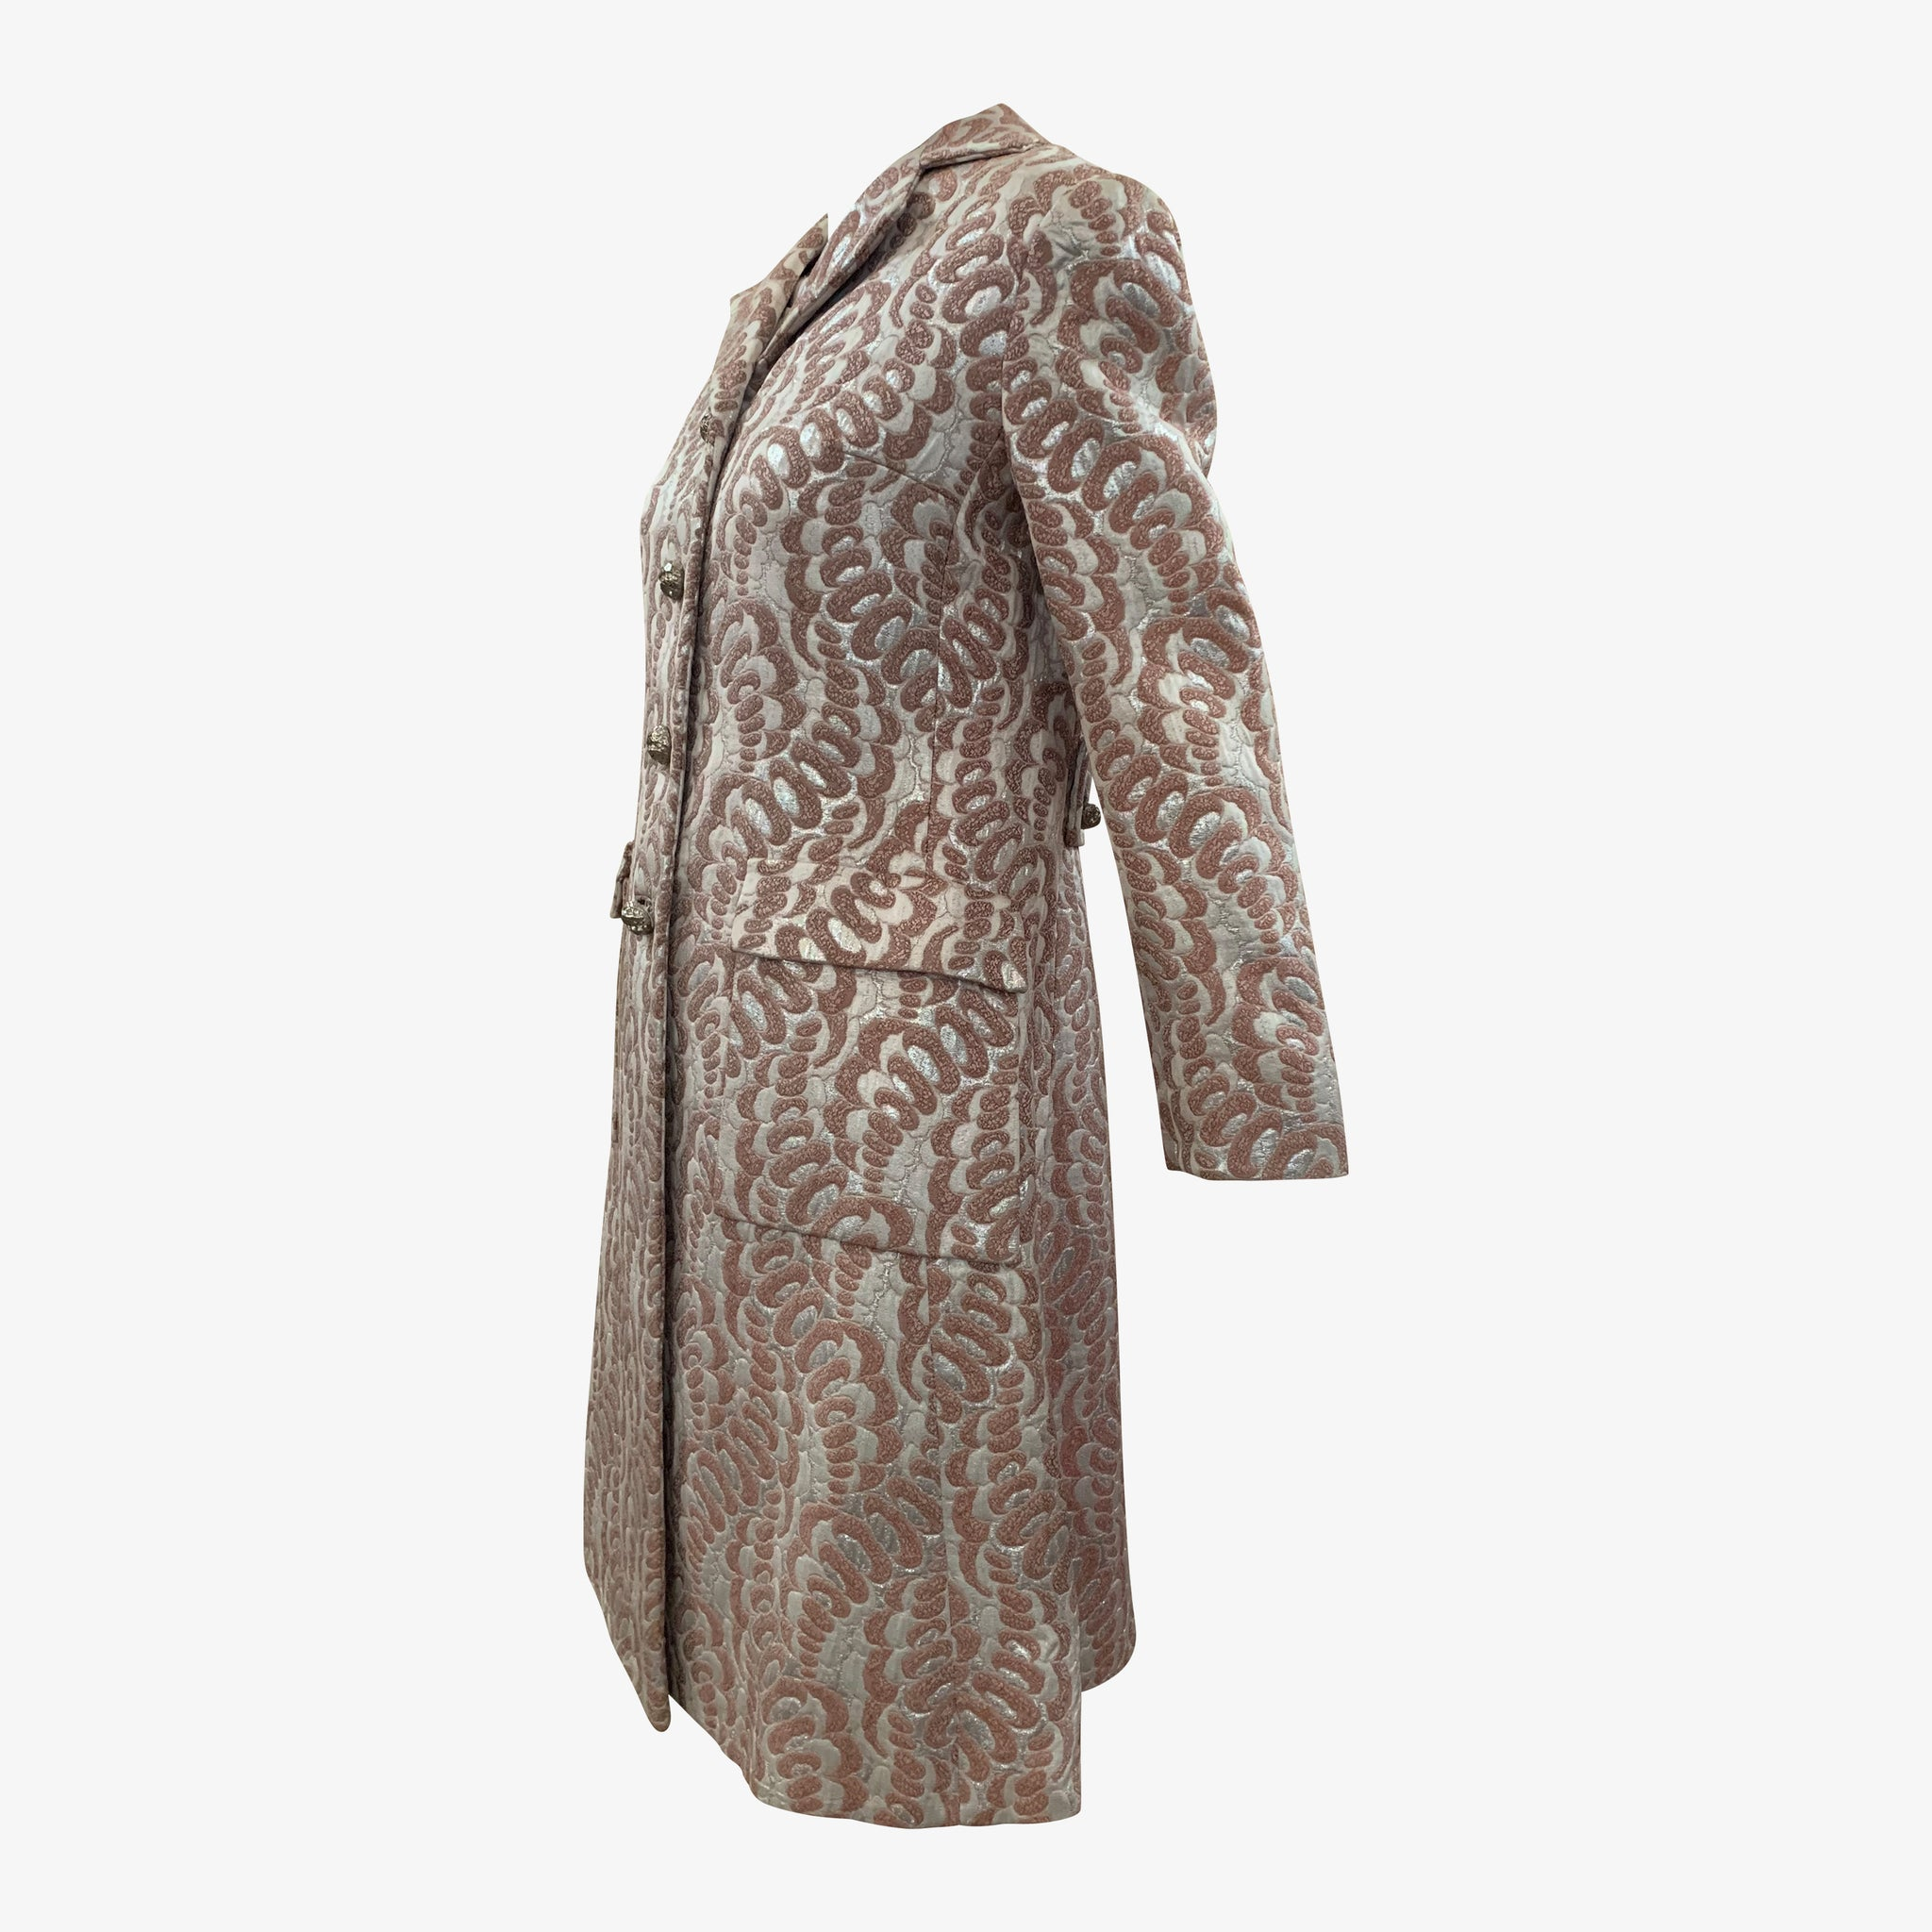 Thalhimers 60s Metallic Brocade Dress and Coat Ensemble ENSEMBLE SIDE 2 of 10